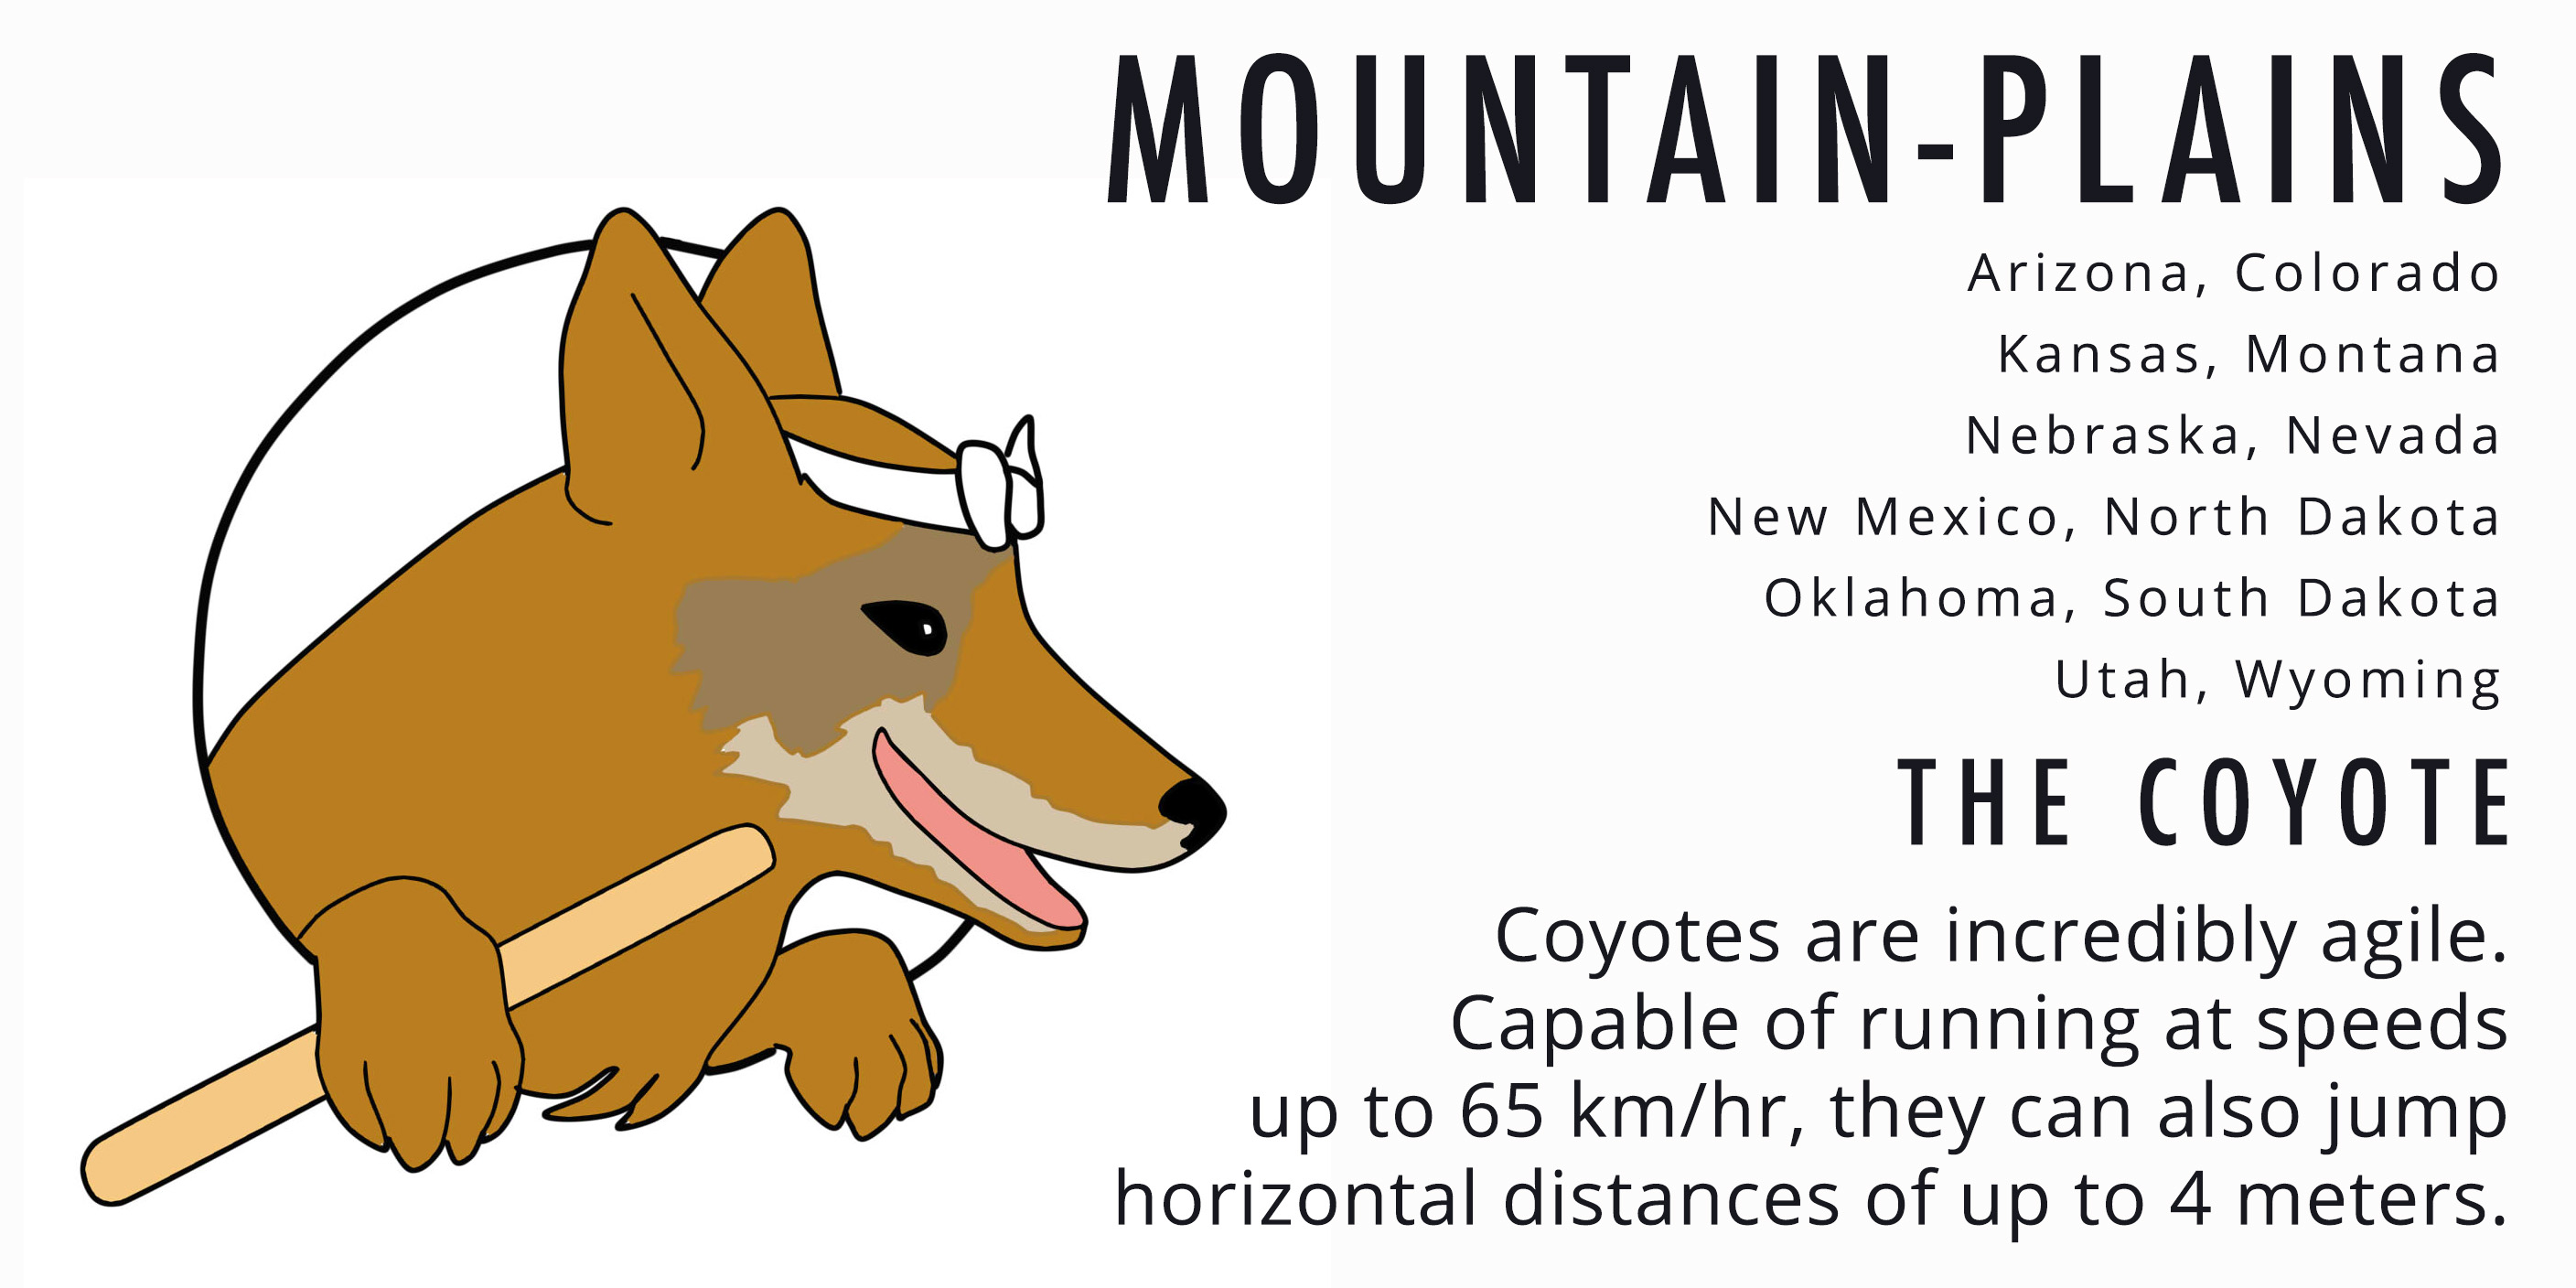 Mountain Plains Coyote Card